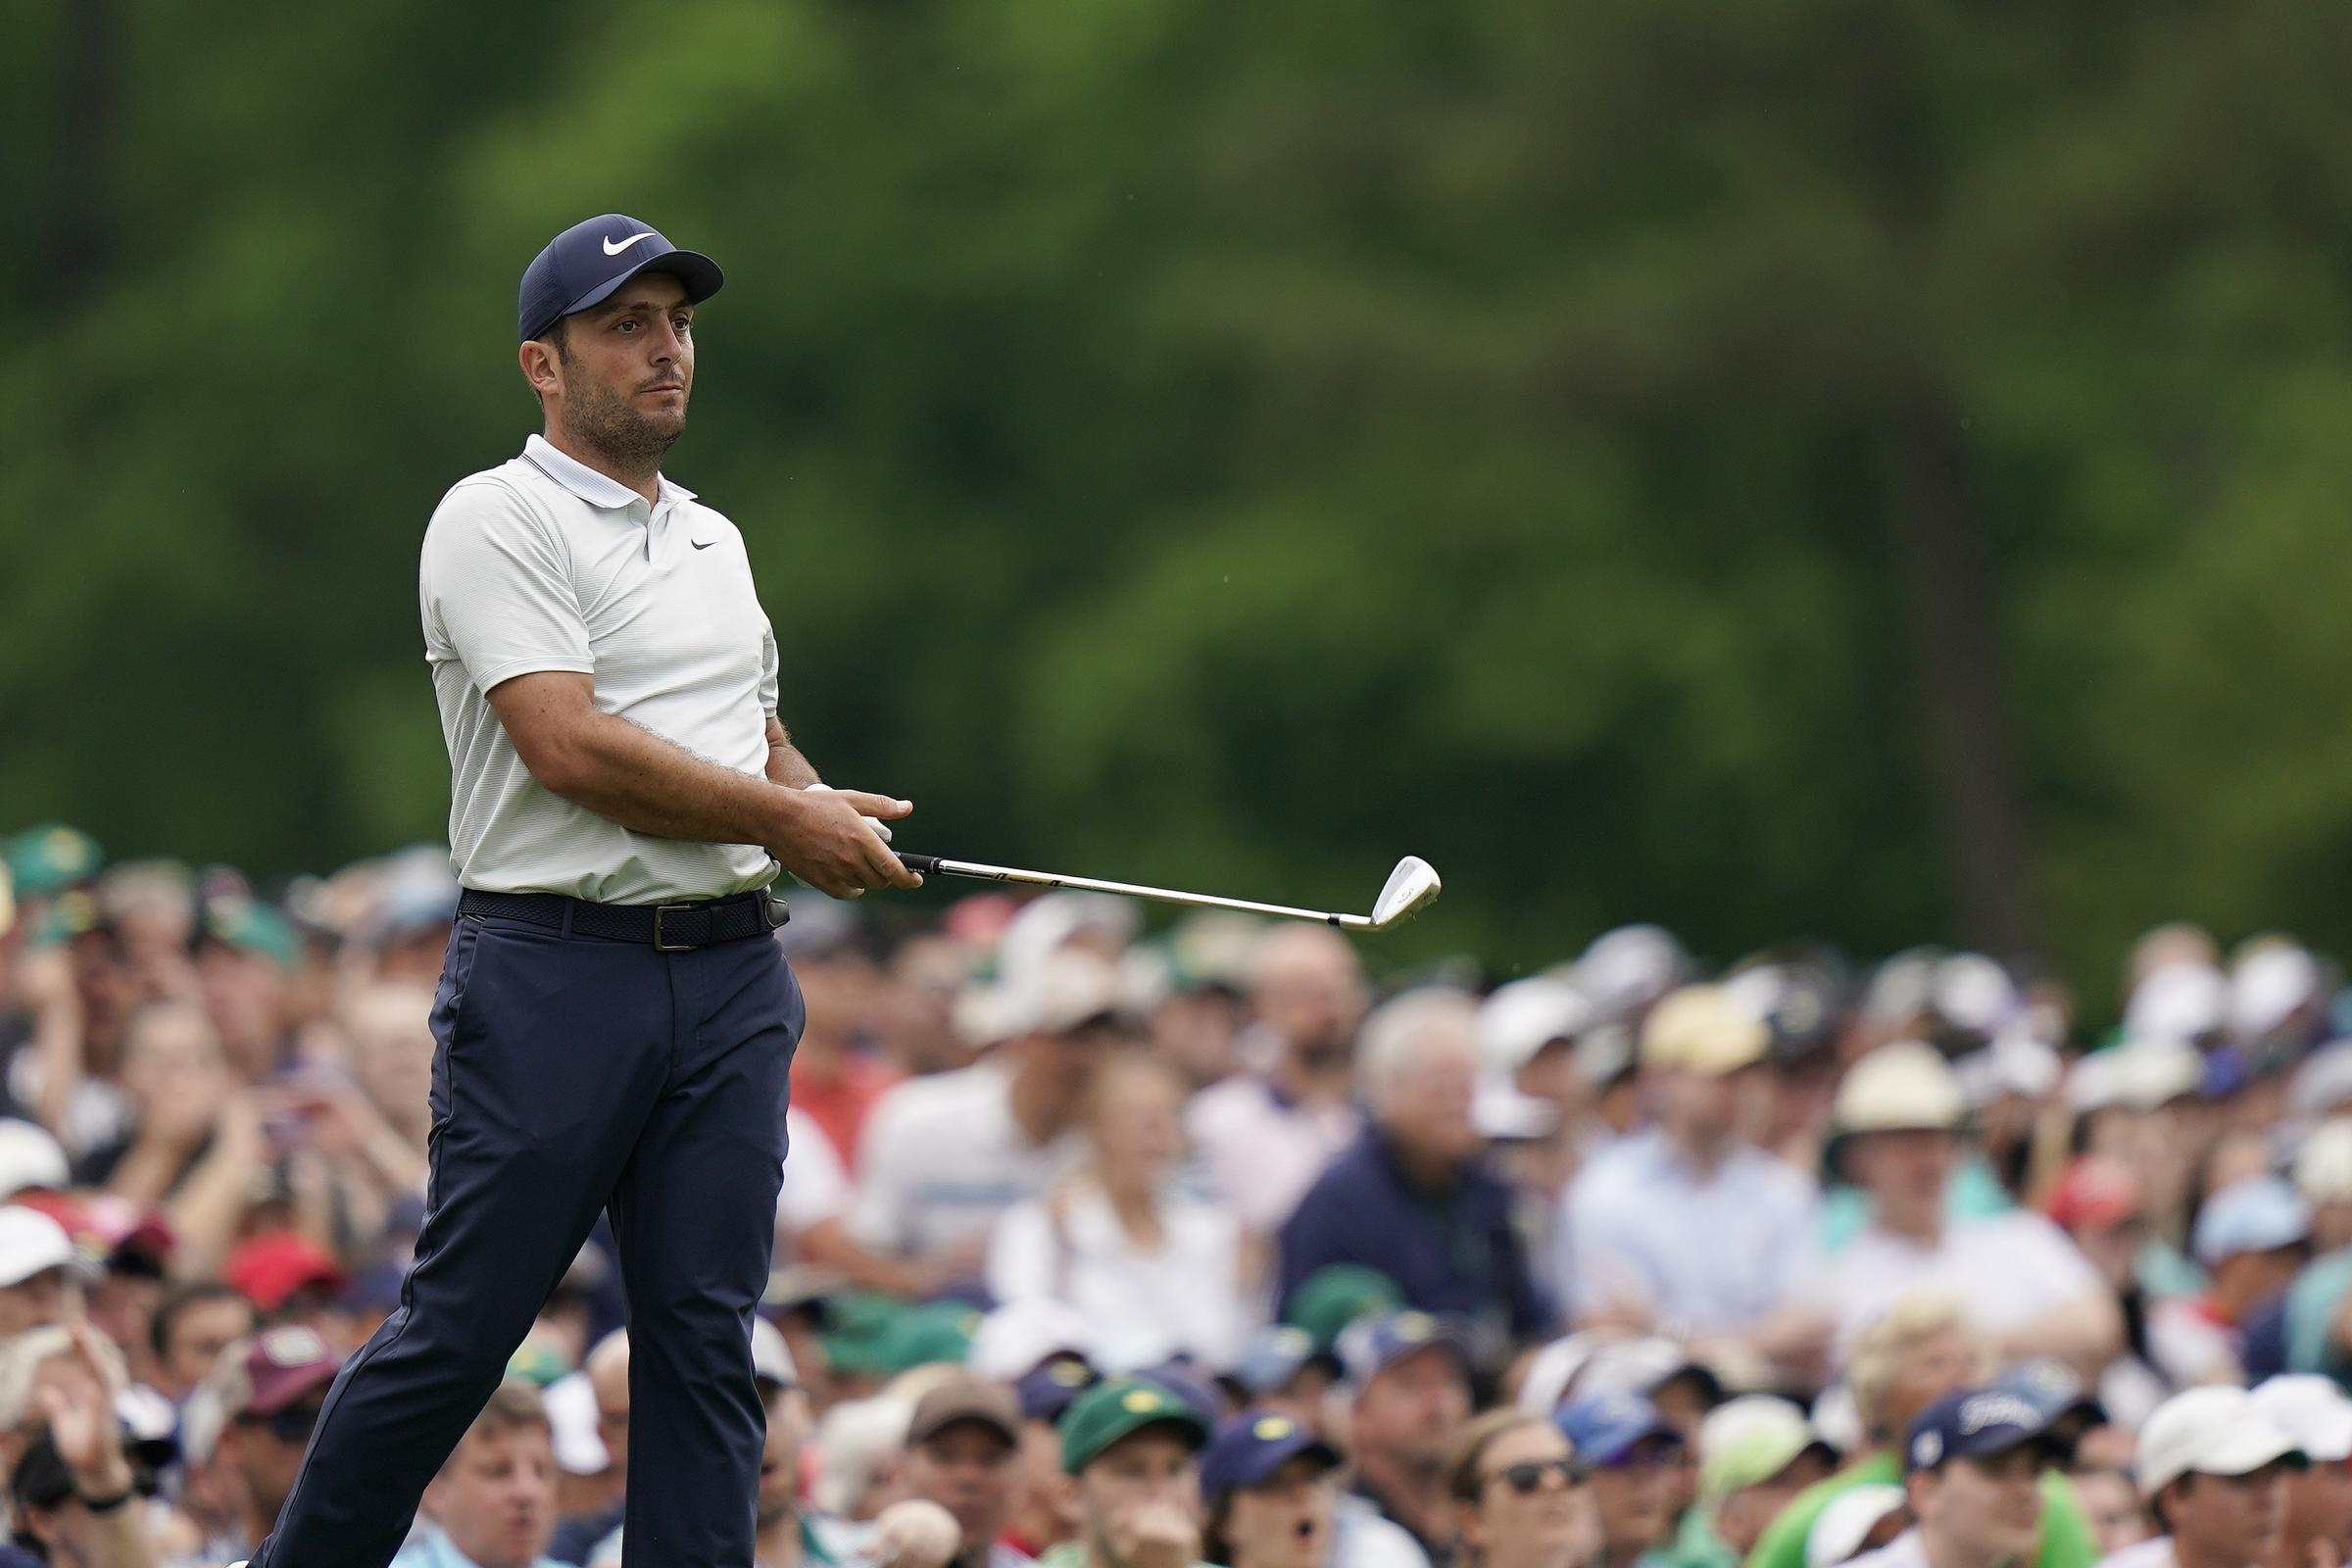 Francesco Molinari's hopes of winning The Masters evaporated with two double bogeys on the back nine at Augusta